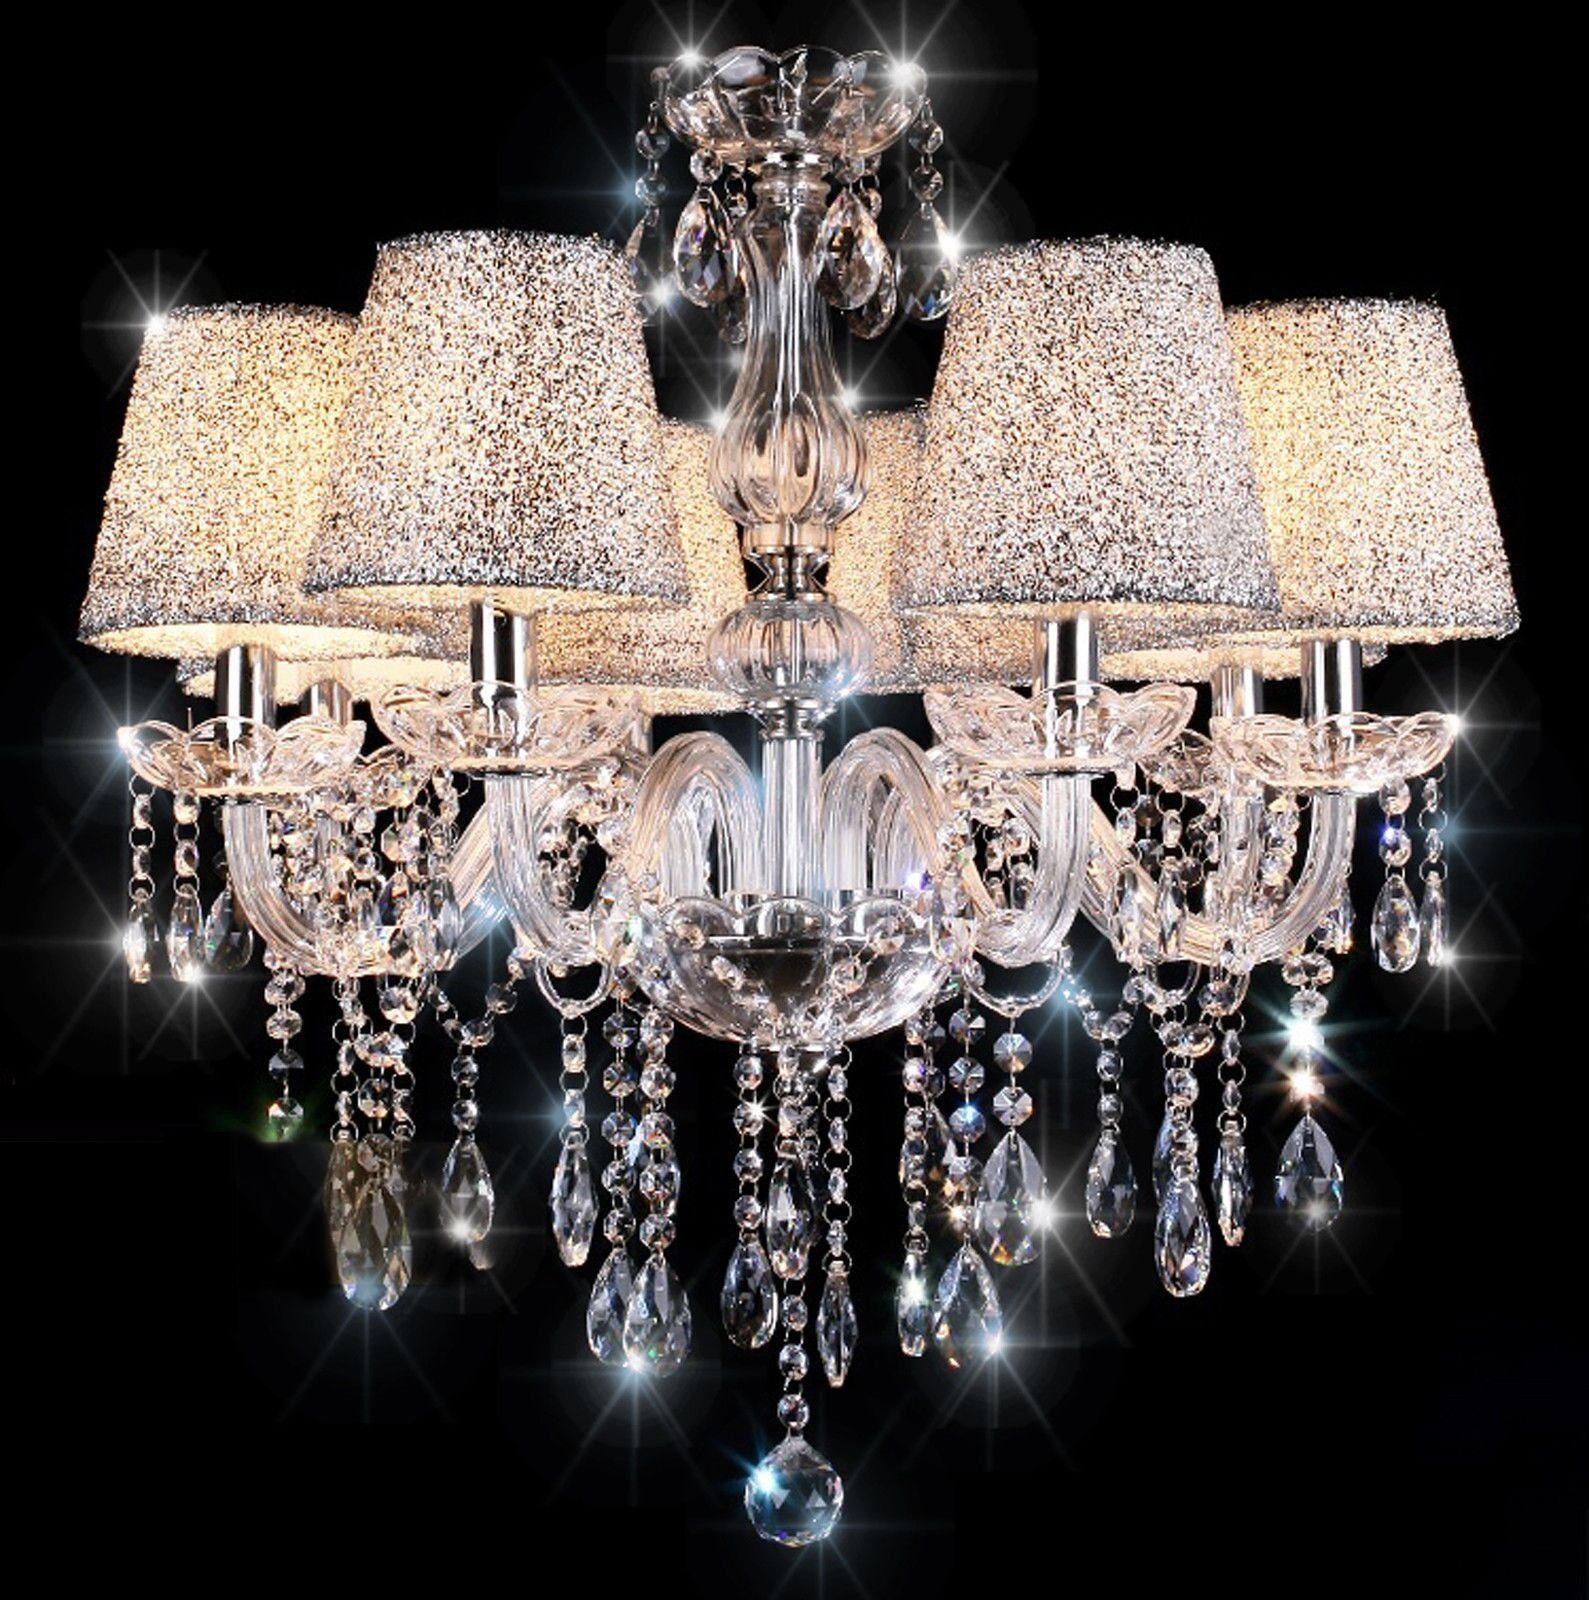 Chandelier Topmax 5 Light Crystal Ceiling Lamp House Ideas Crystal Chandelier Lighting